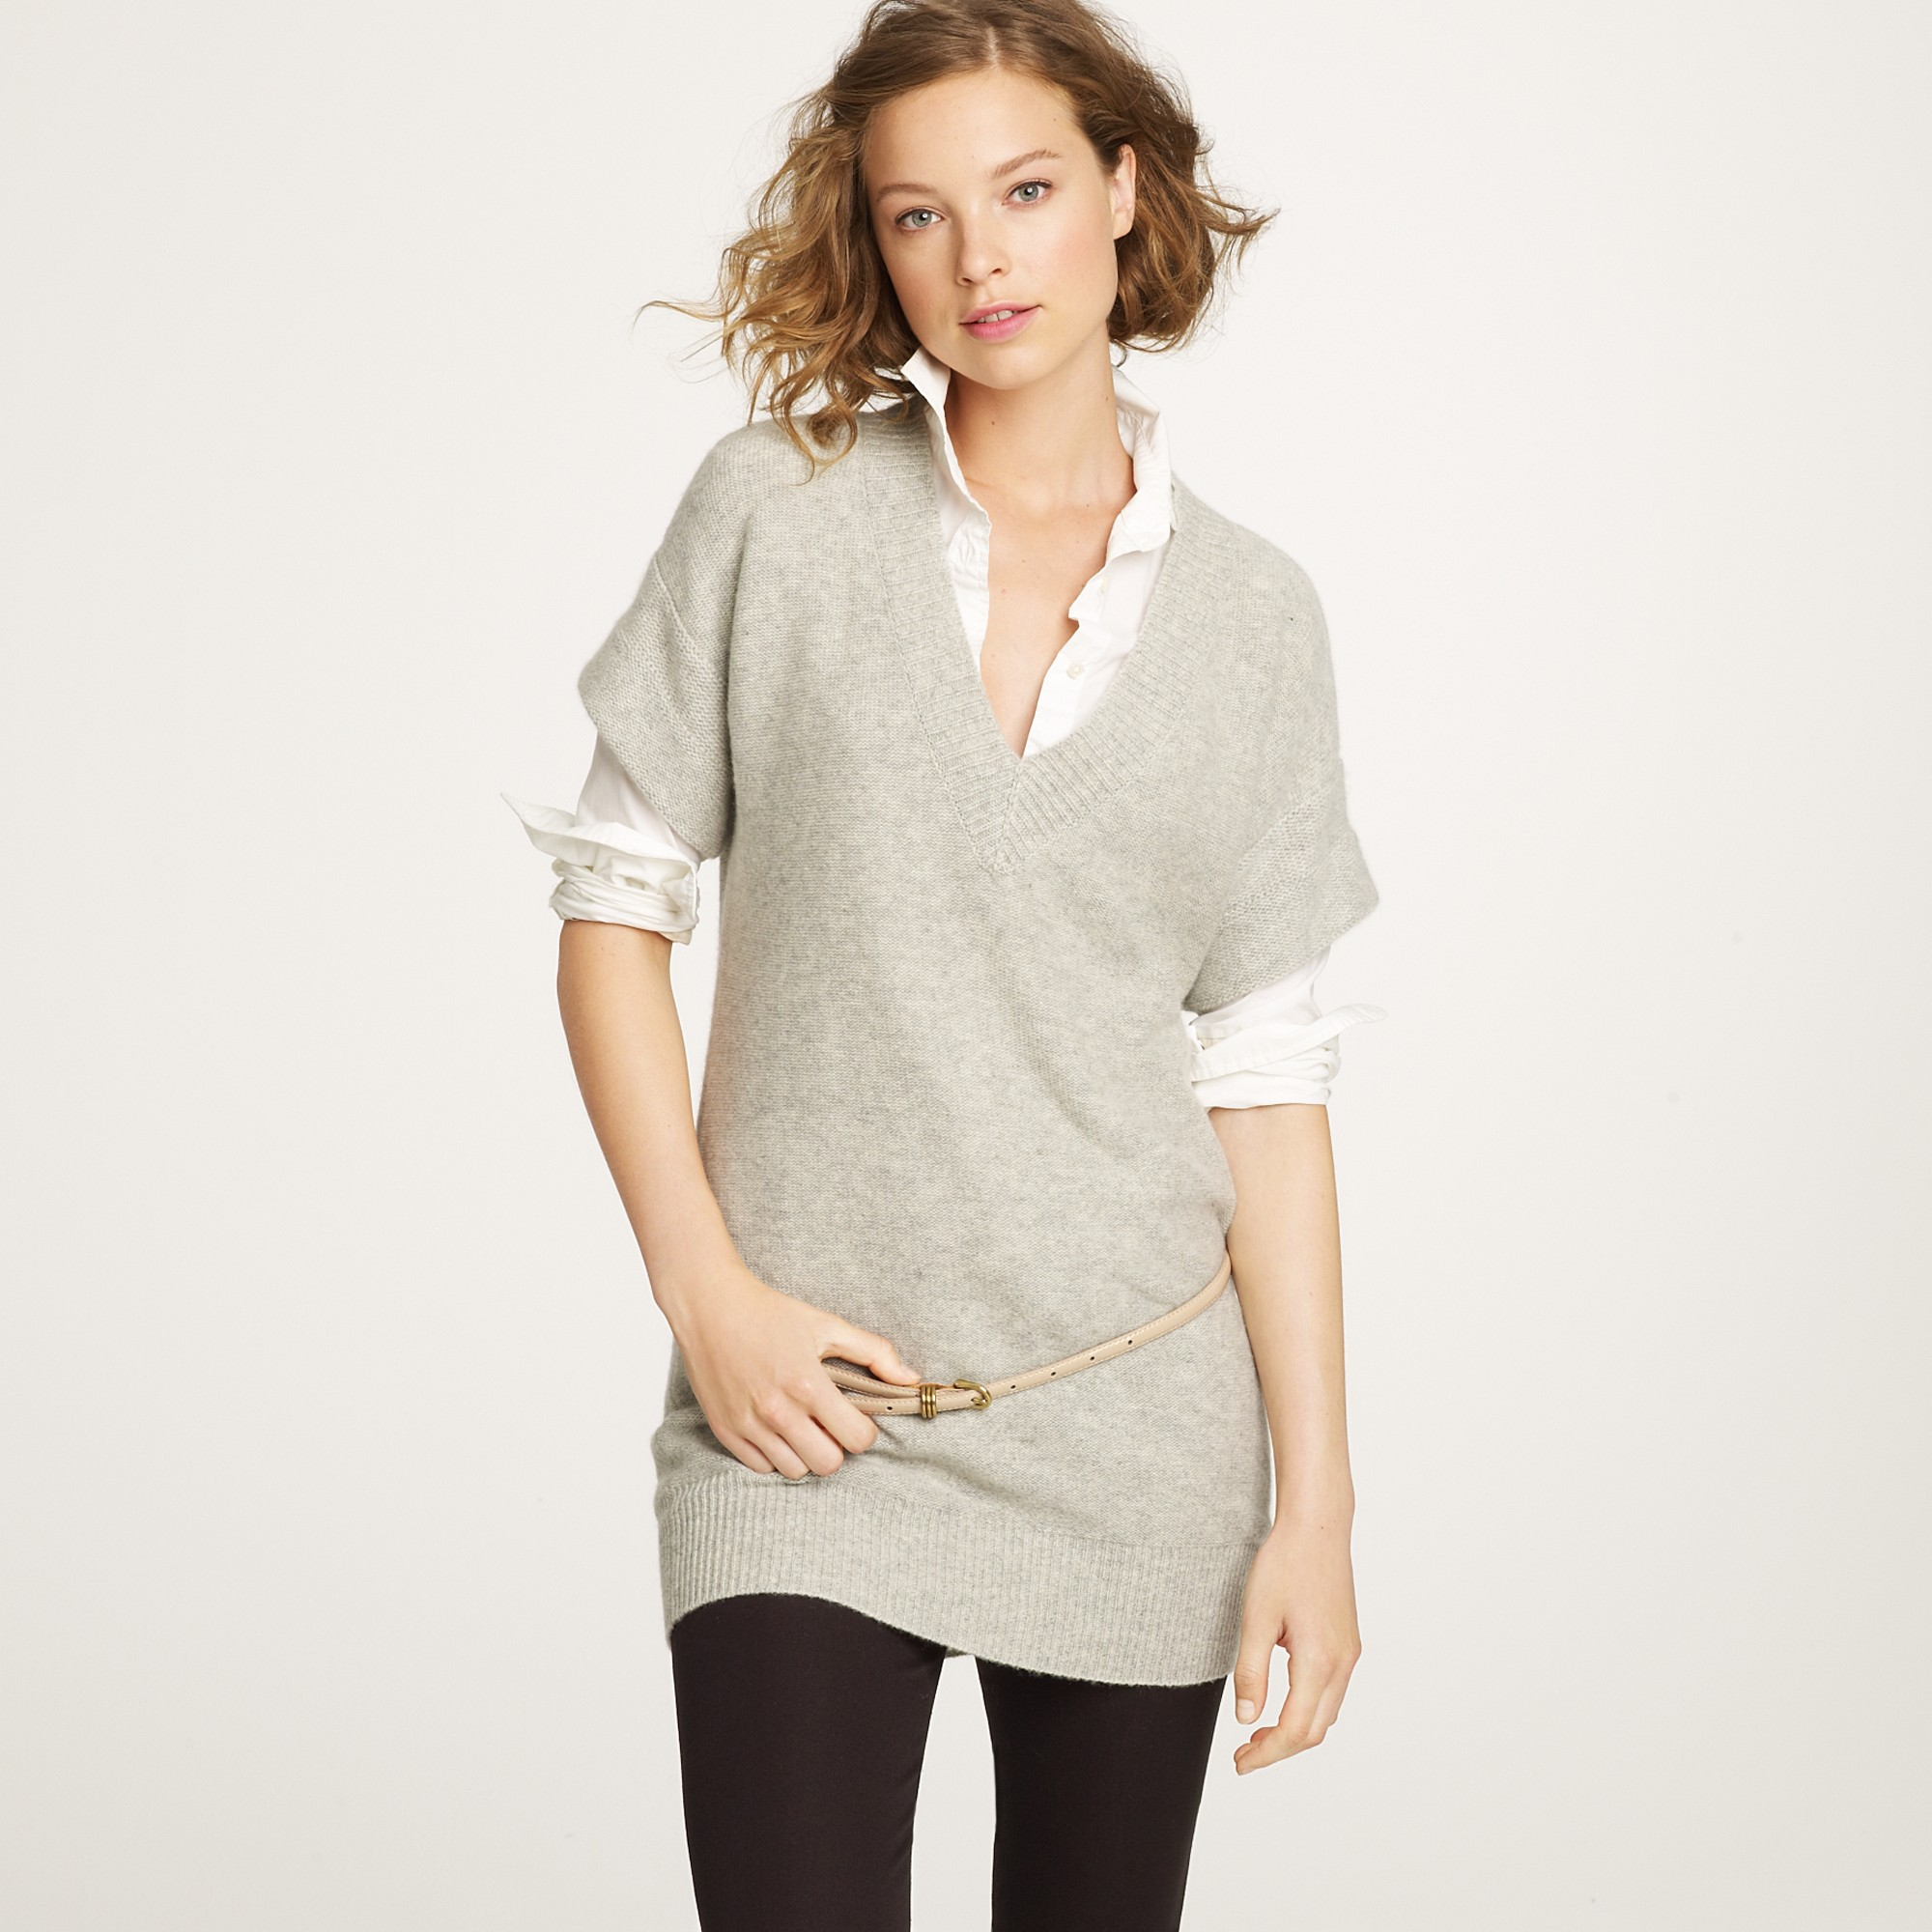 Find womens short sleeve v-neck sweaters at ShopStyle. Shop the latest collection of womens short sleeve v-neck sweaters from the most popular stores.